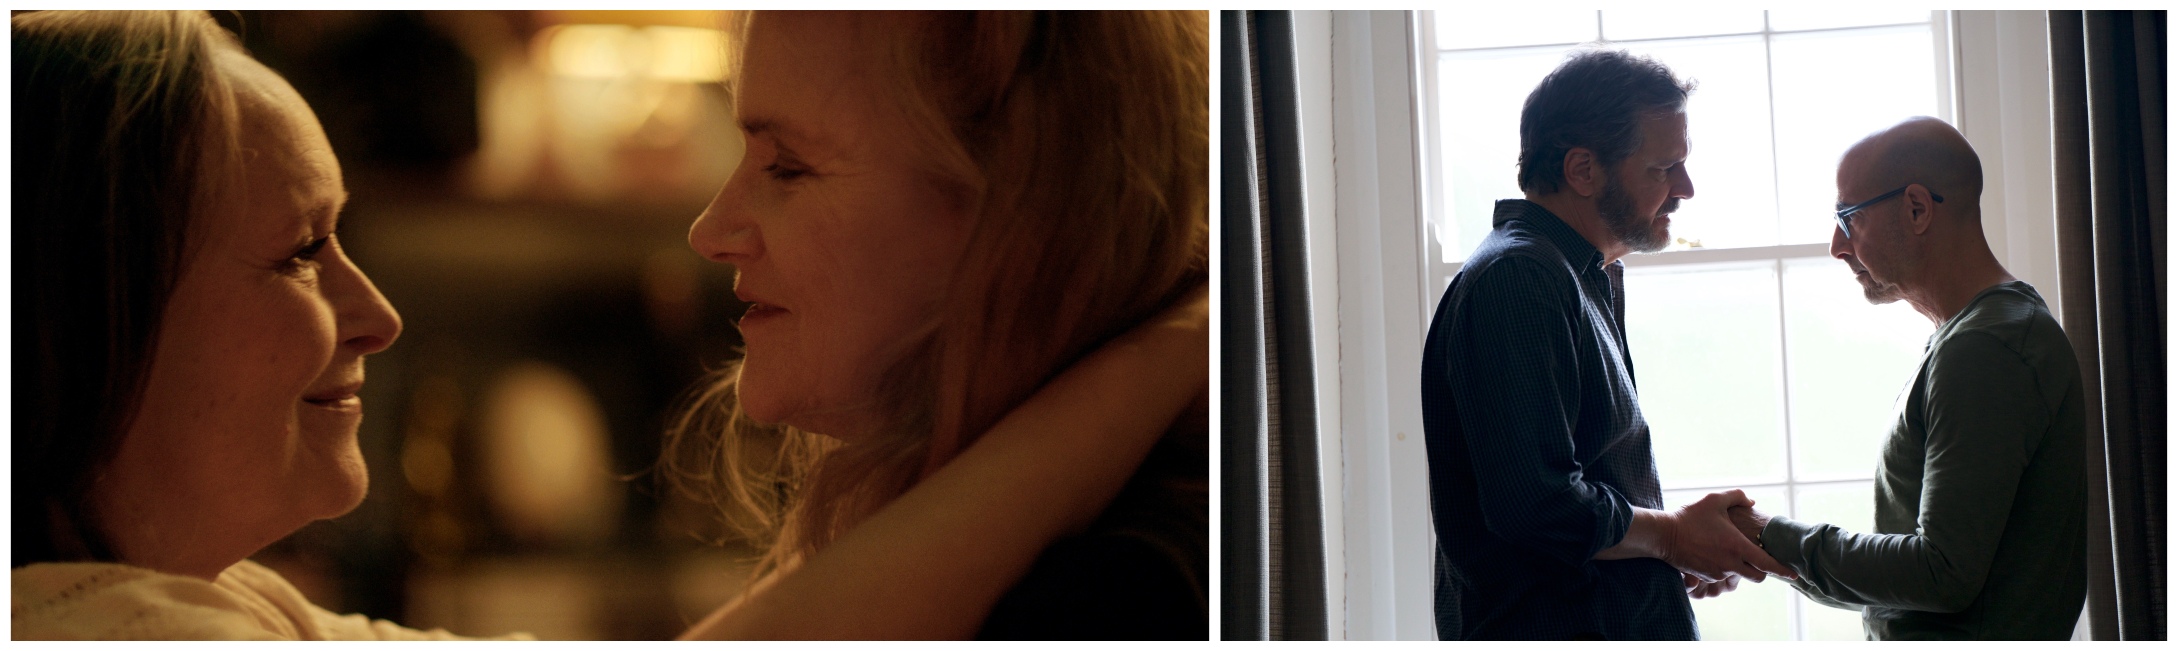 """Left image: A still from """"Two of Us."""" (Courtesy Magnolia Pictures) Right image: A still from  """"Supernova."""" (Courtesy Bleecker Street Media)"""